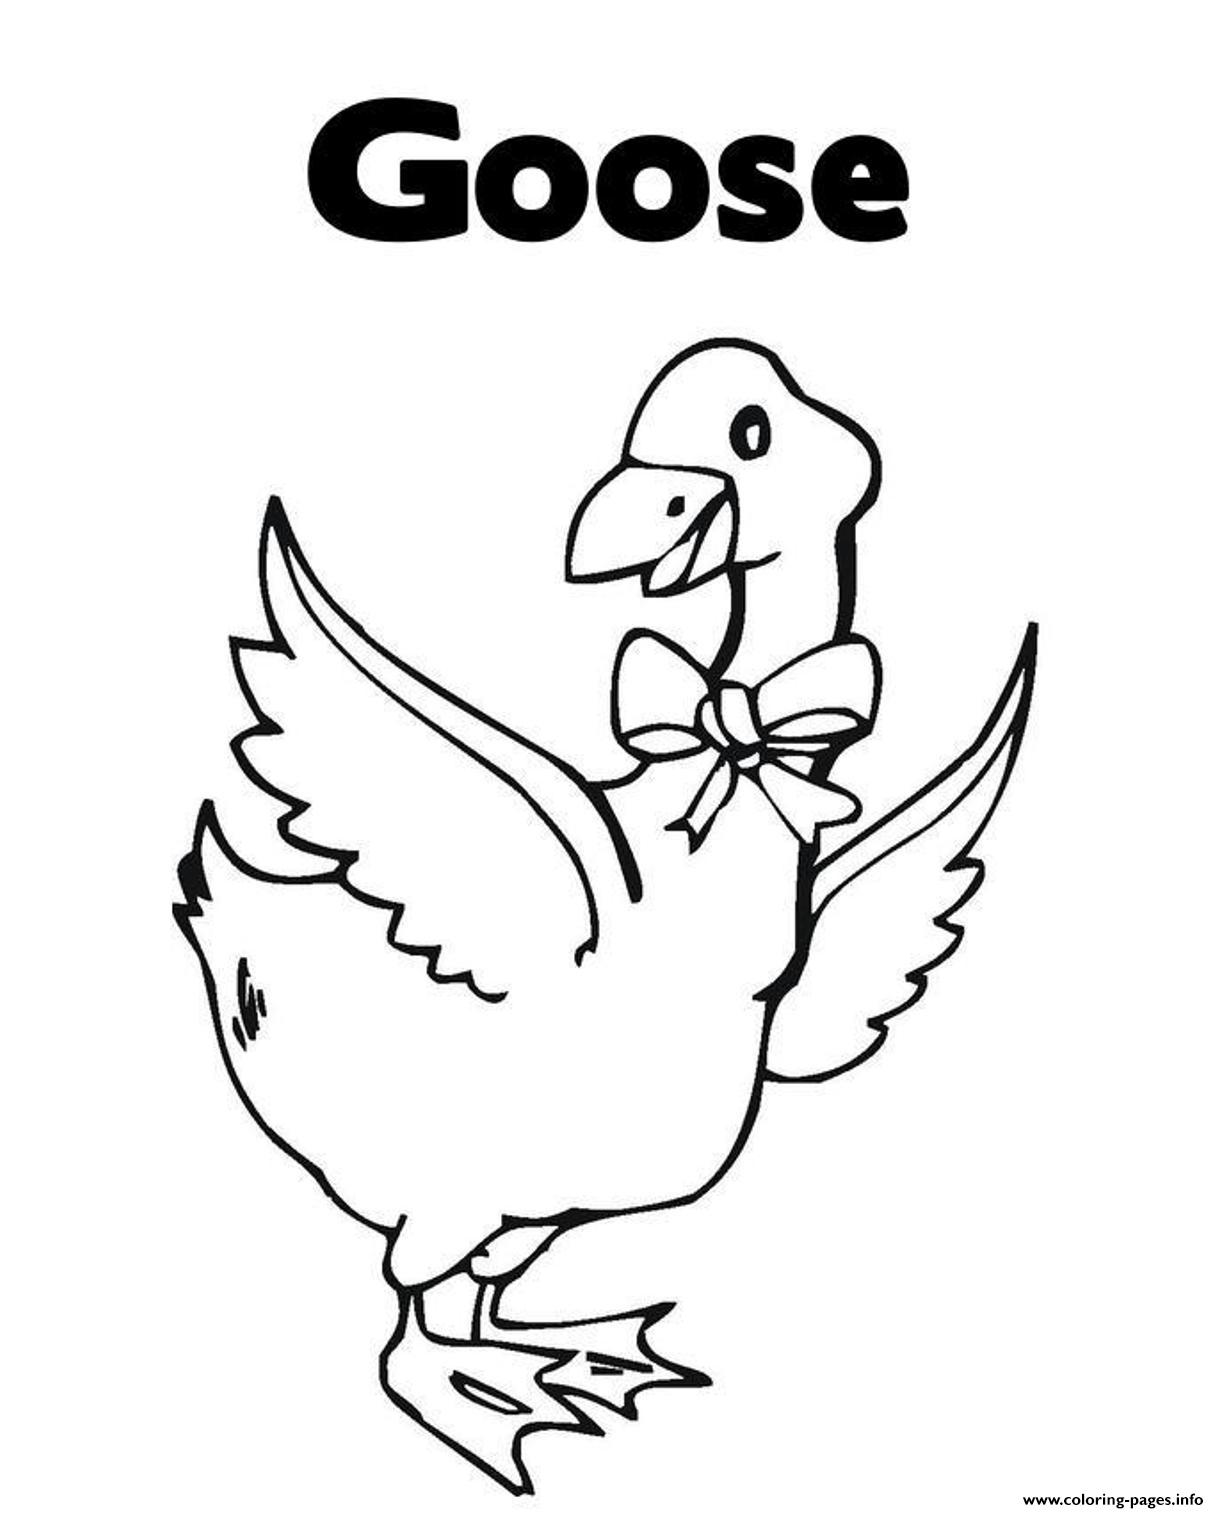 Printable Animal S Goose For Kids618d Coloring Pages Printable